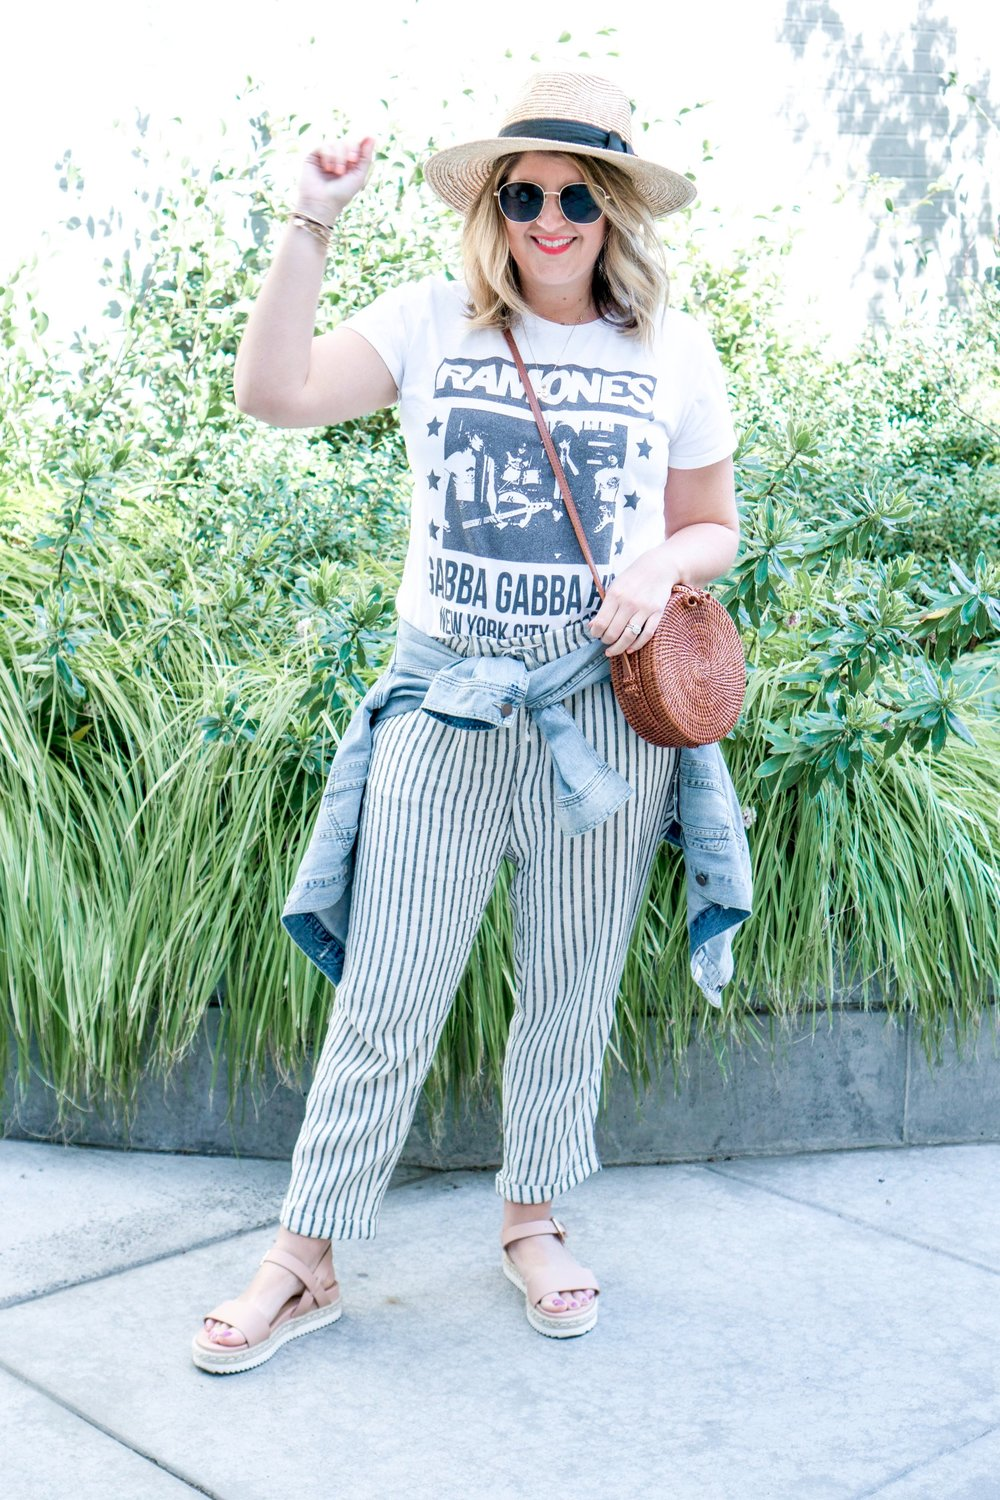 The_Grey_Edit_x_Styled_Out_West_-_Spring_Pregnancy_Styling-04795.jpg